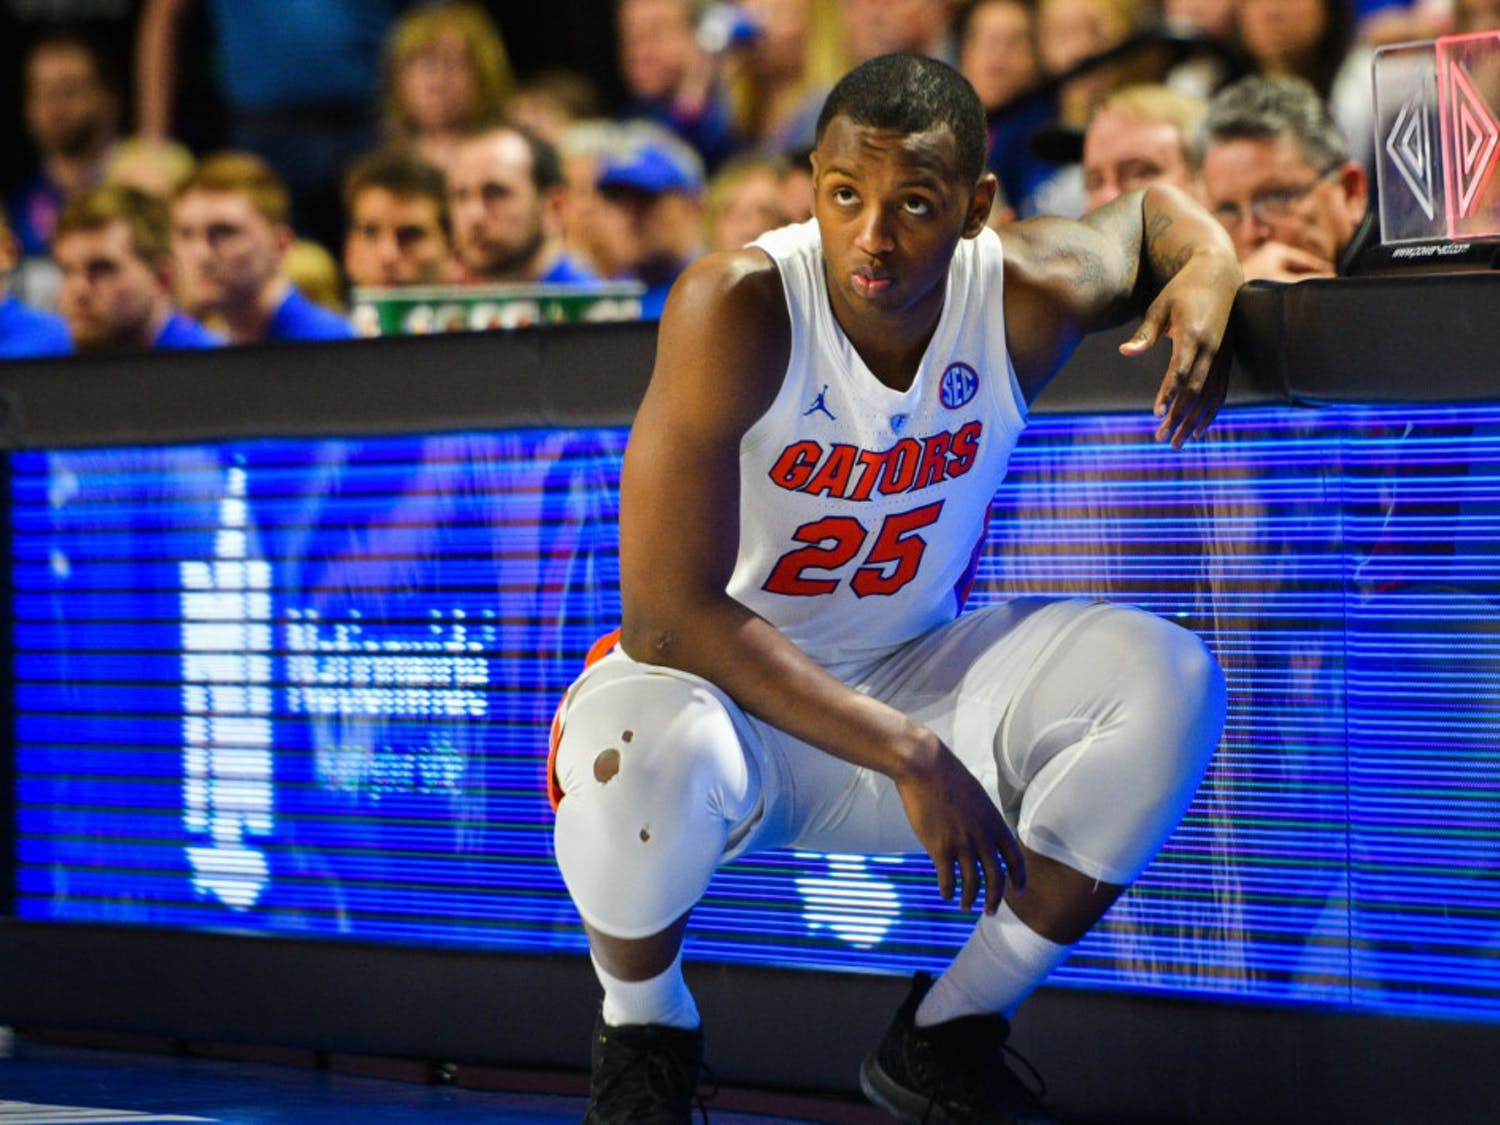 UF forward Keith Stone tore the ACL in his left knee against Georgia on Jan. 19.